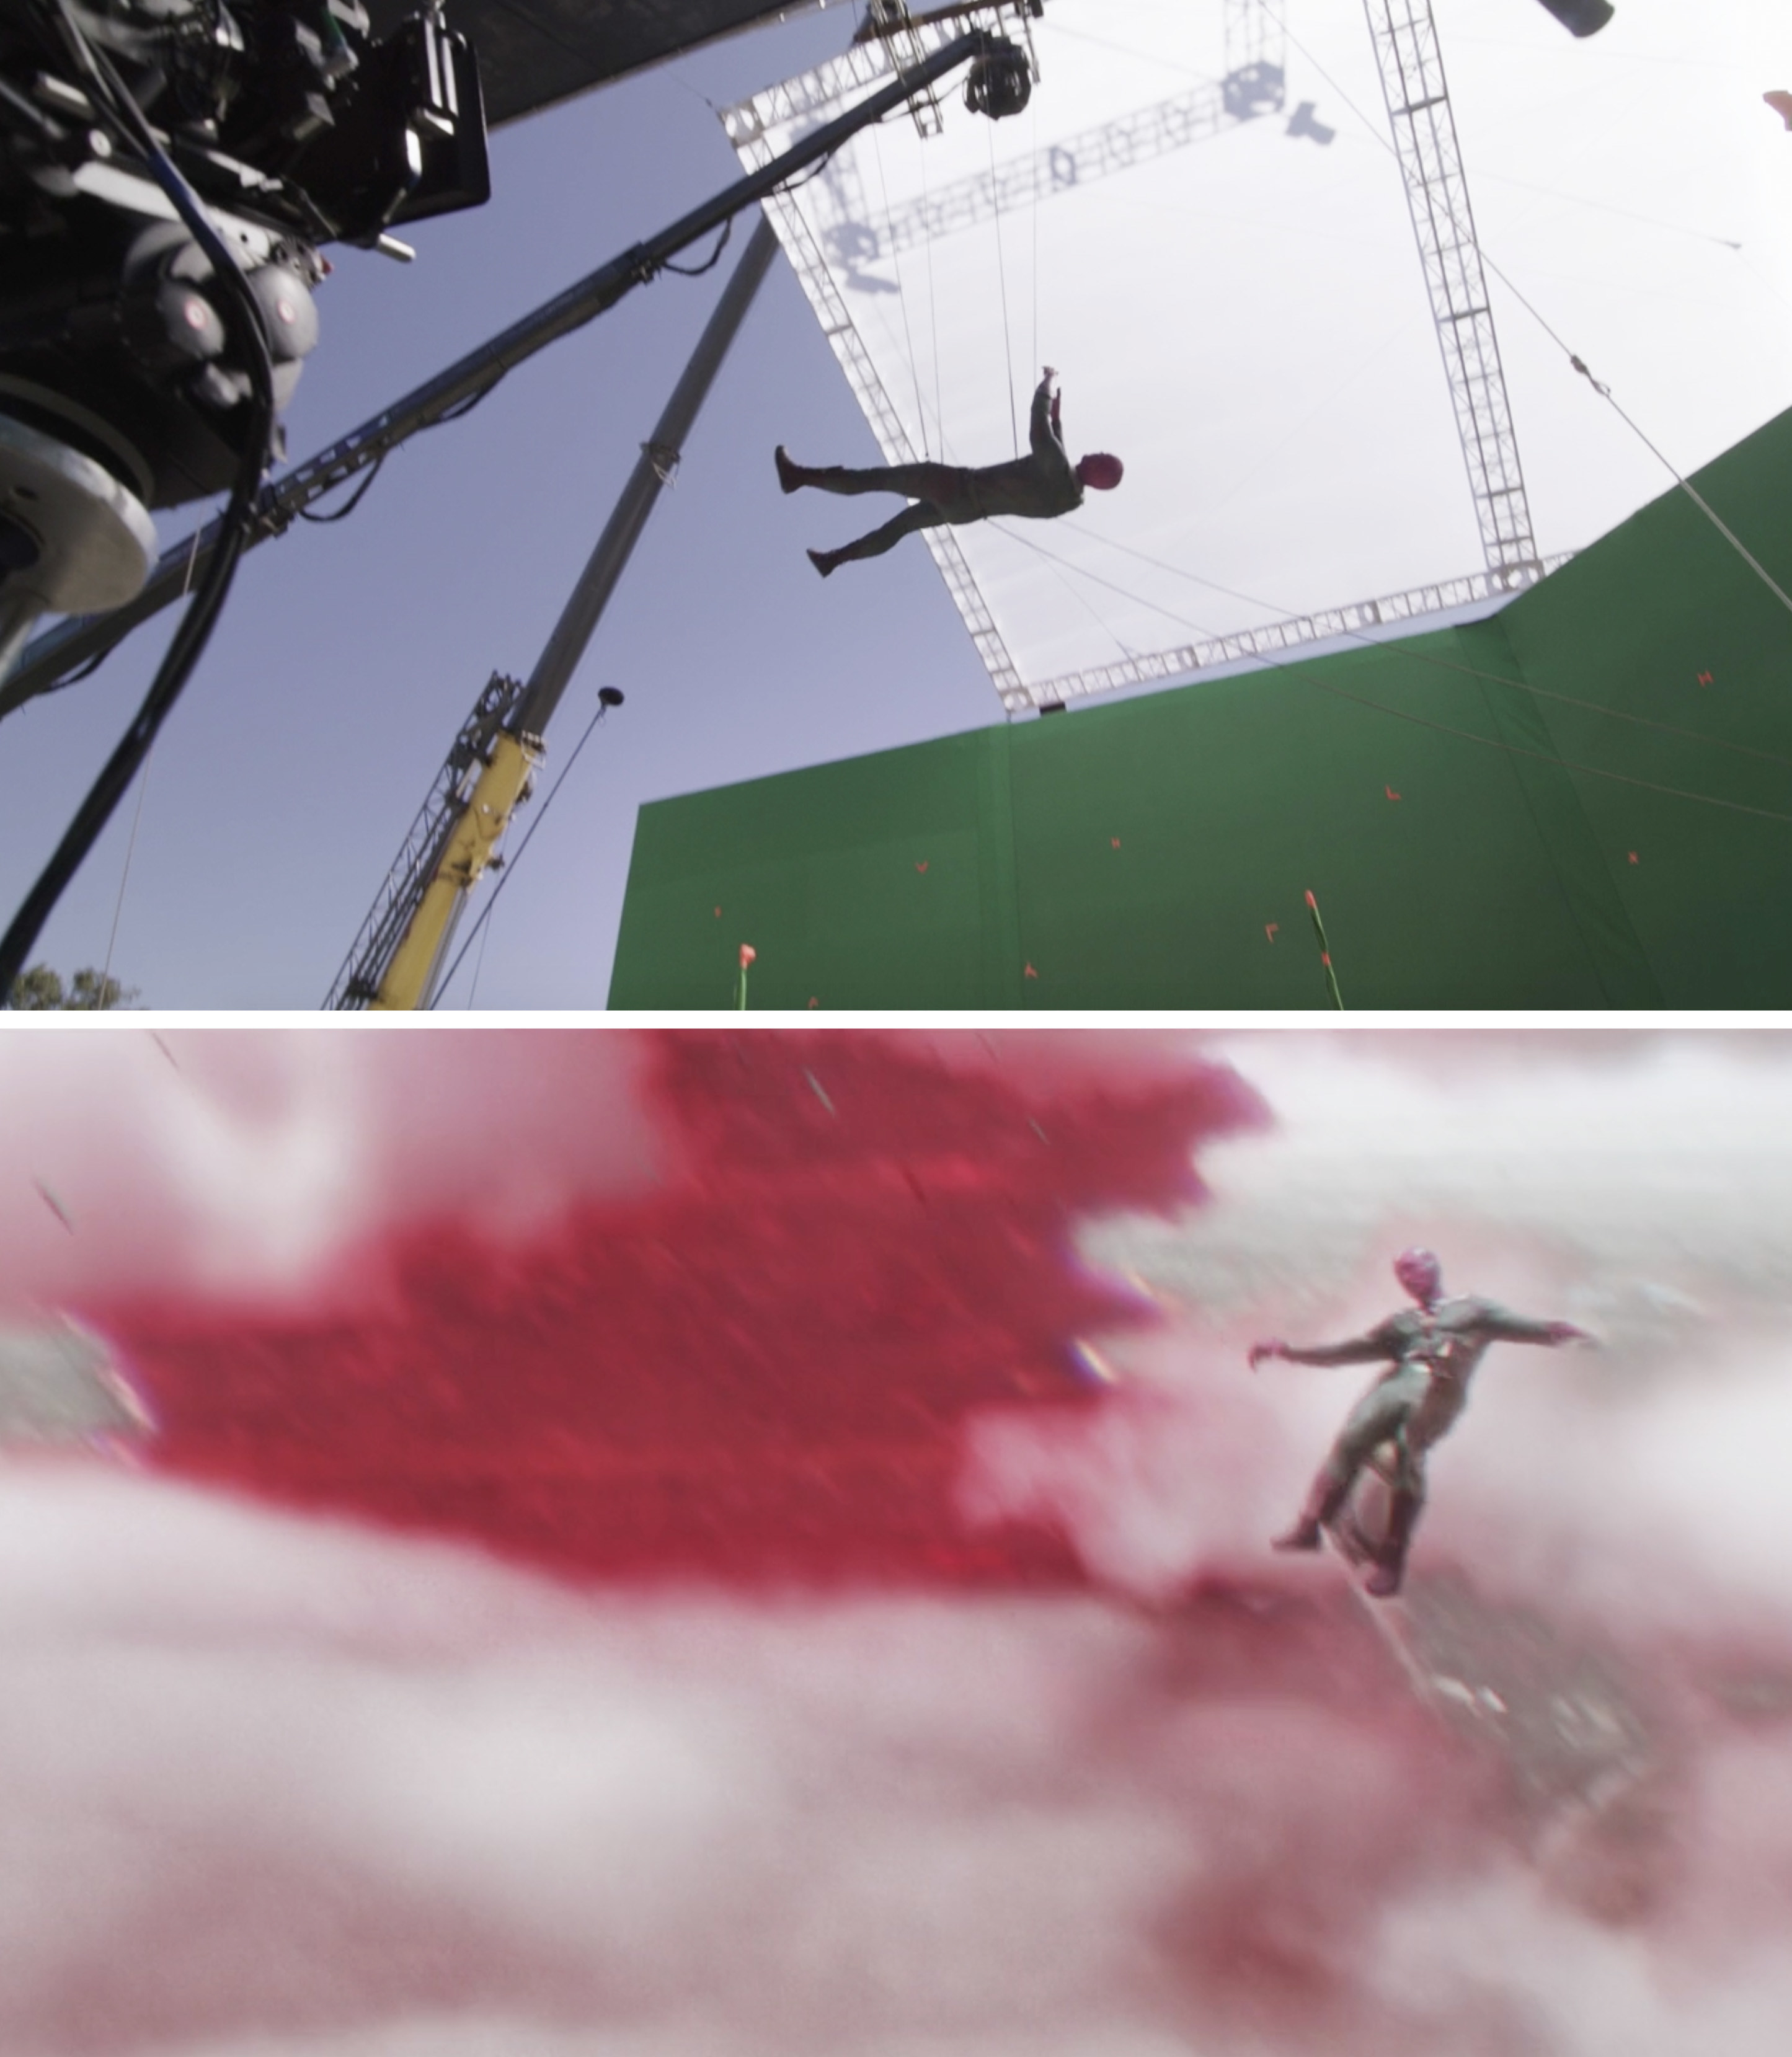 Paul Bettany on a green screen and being lowered to the ground